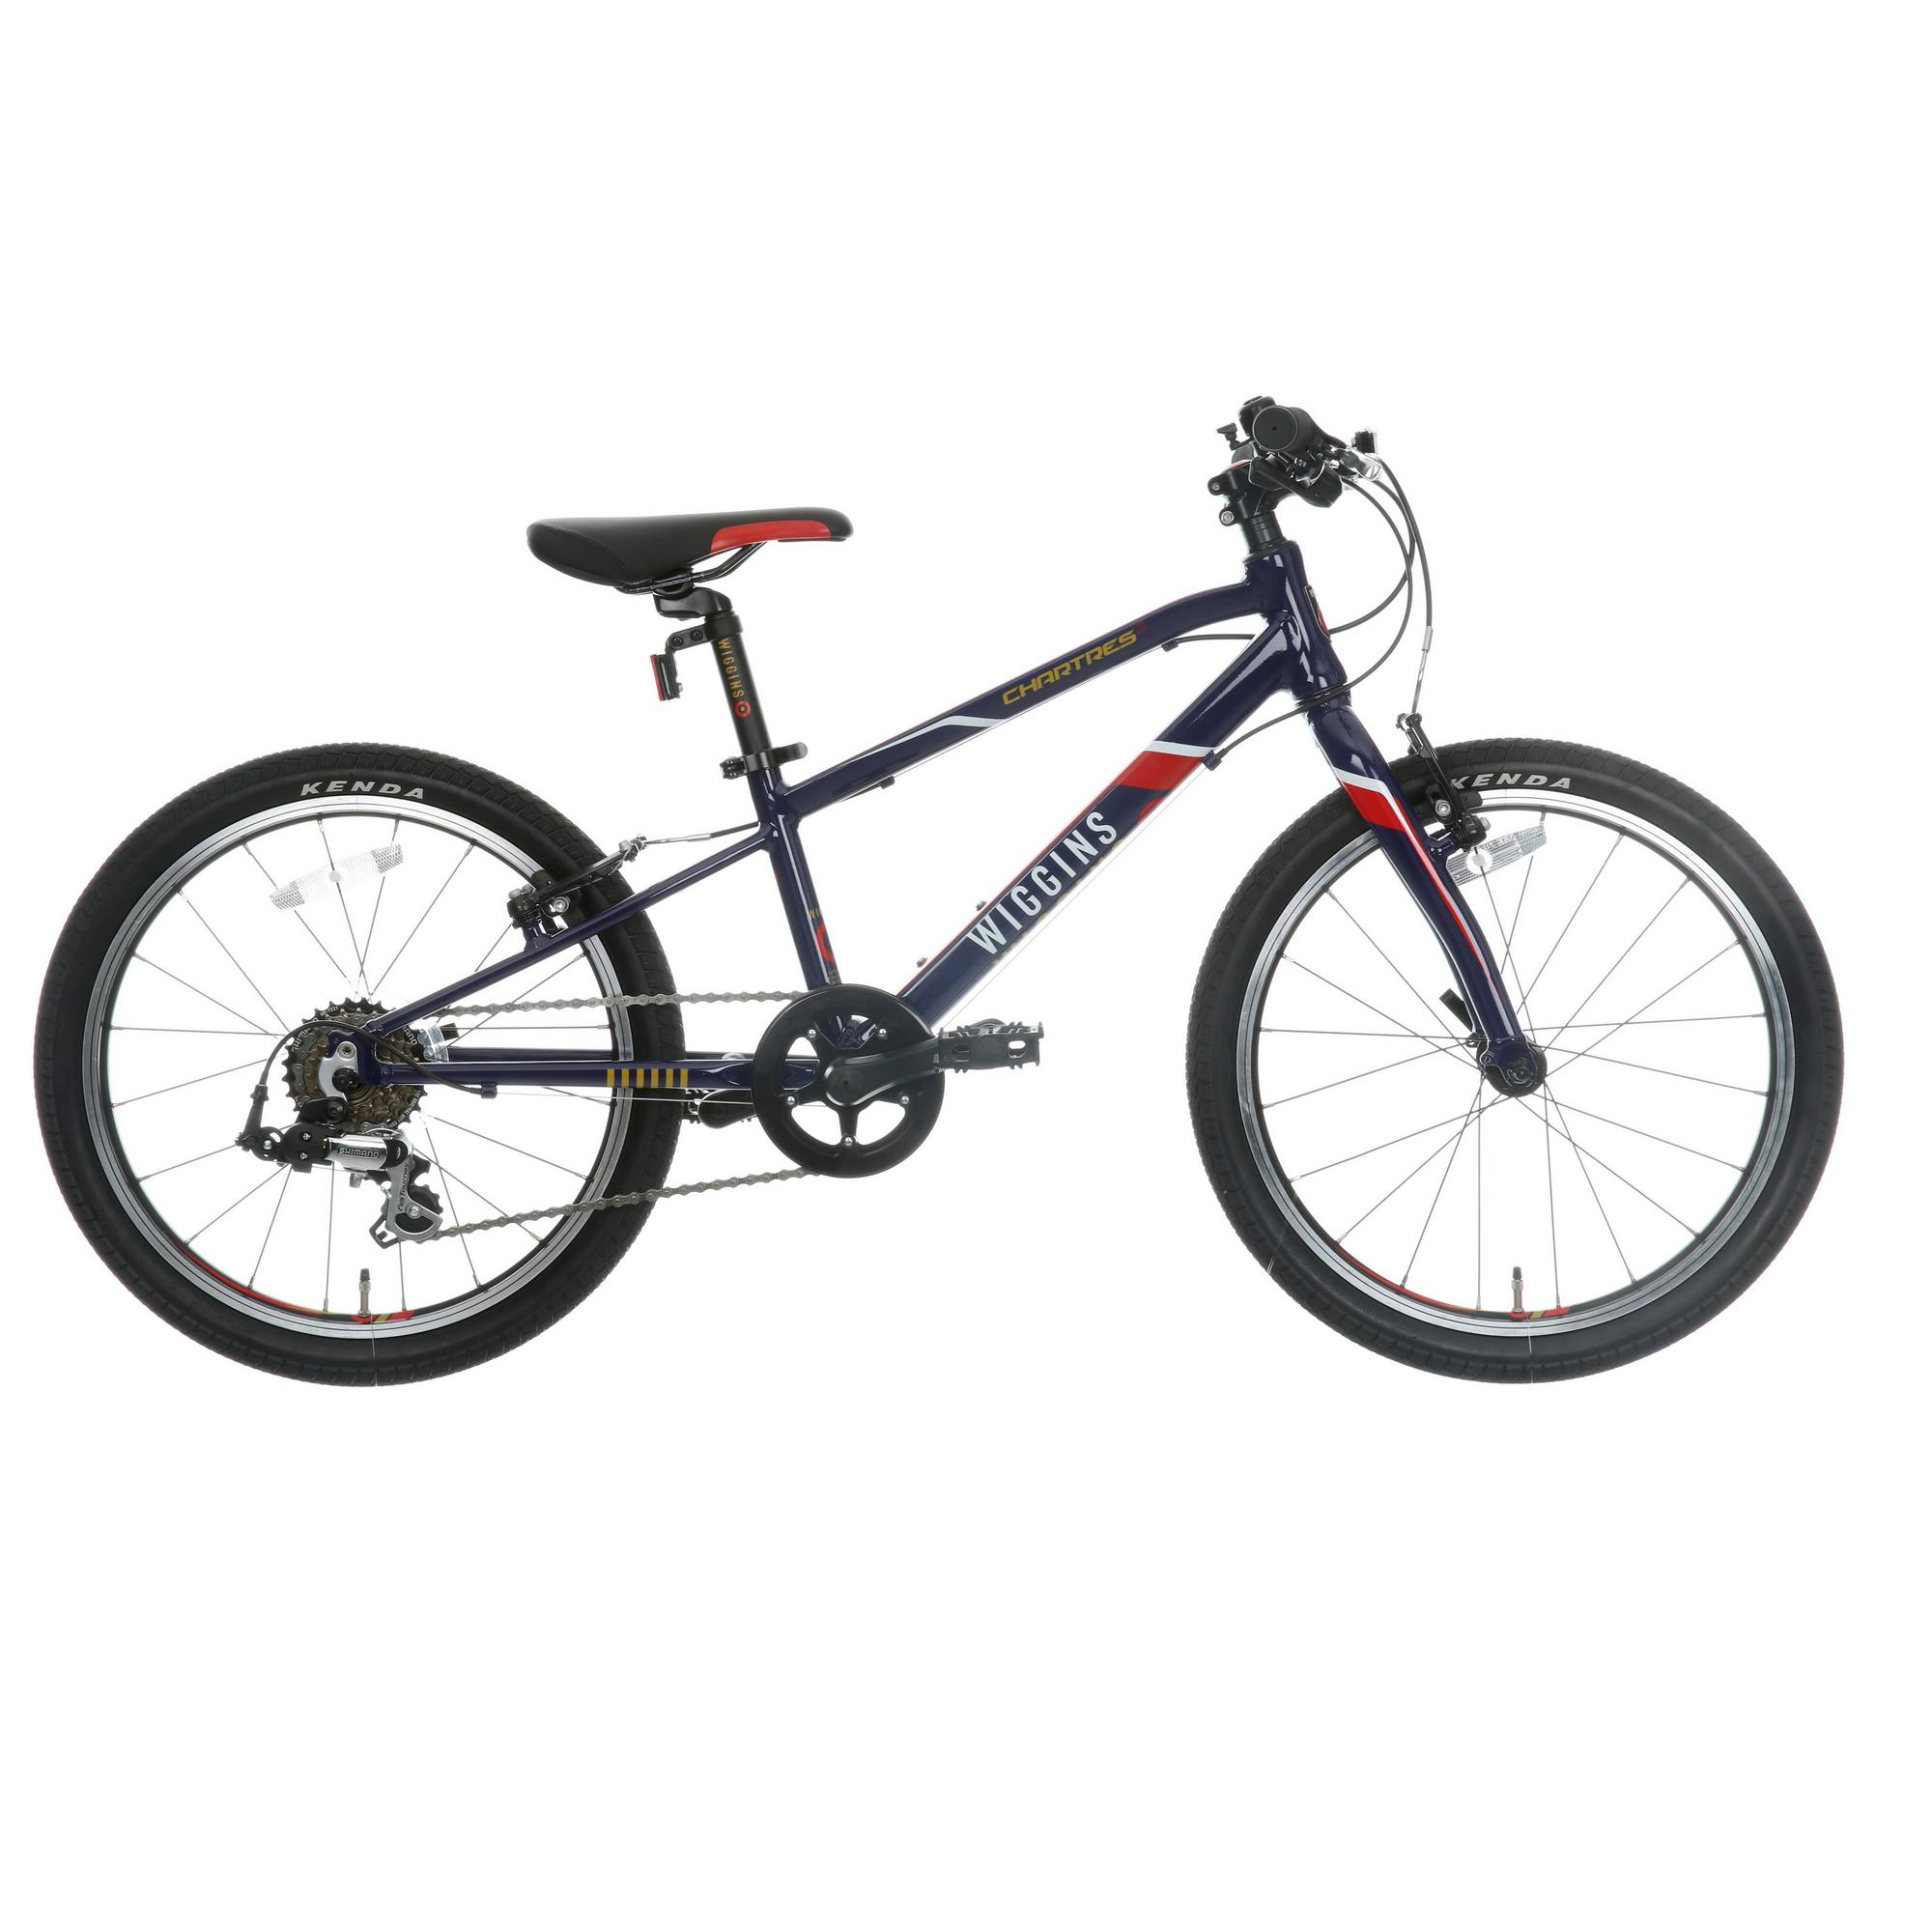 Wiggins Chartres Boys Girls Bike 7 Gears Shimano Alloy Frame 20 ...